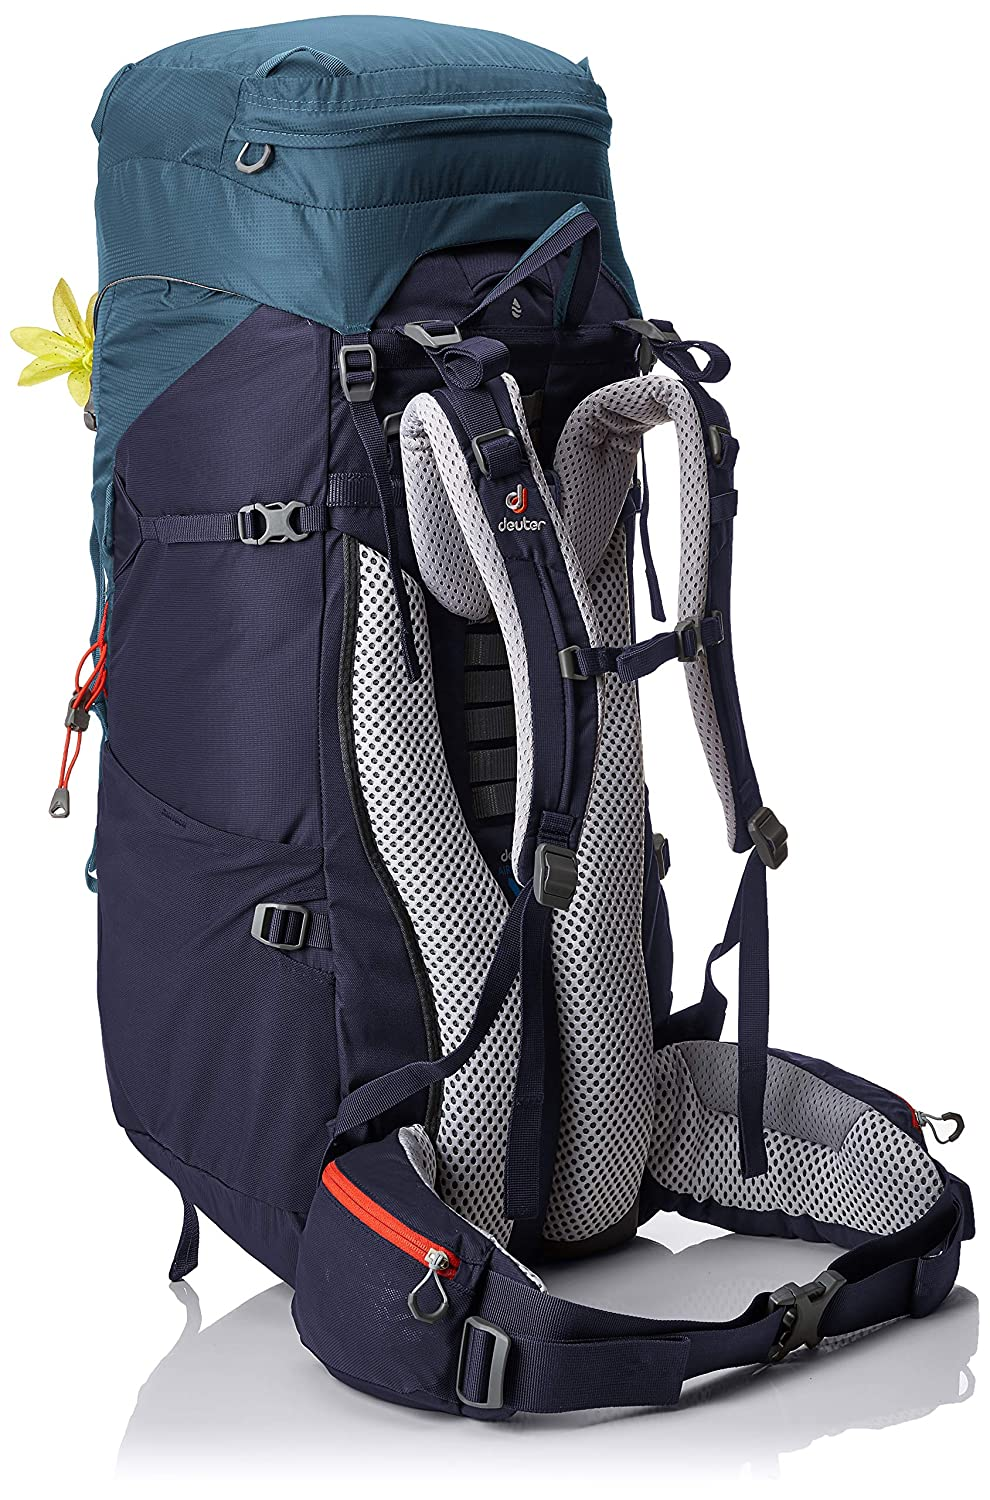 Deuter Aircontact Lite 60 10 SL Backpacking Pack